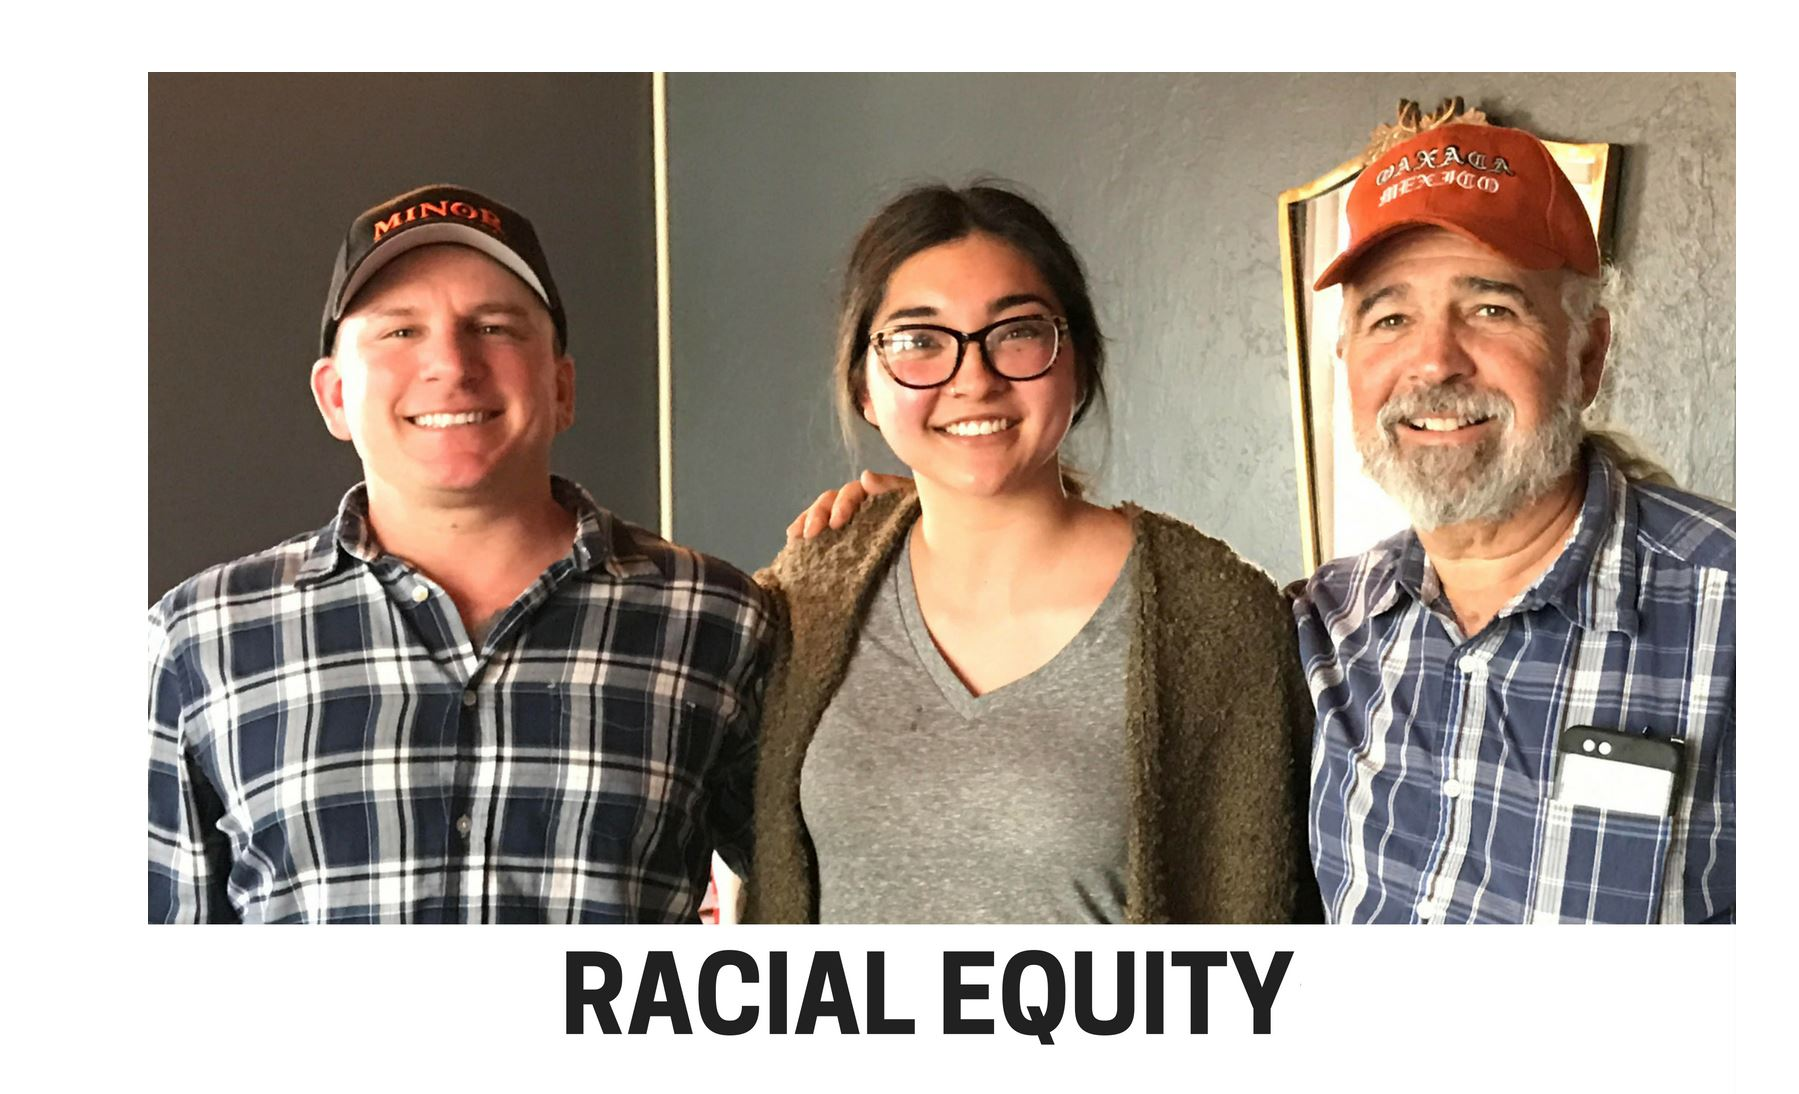 Racial Equity: Conversation and Action - For Business